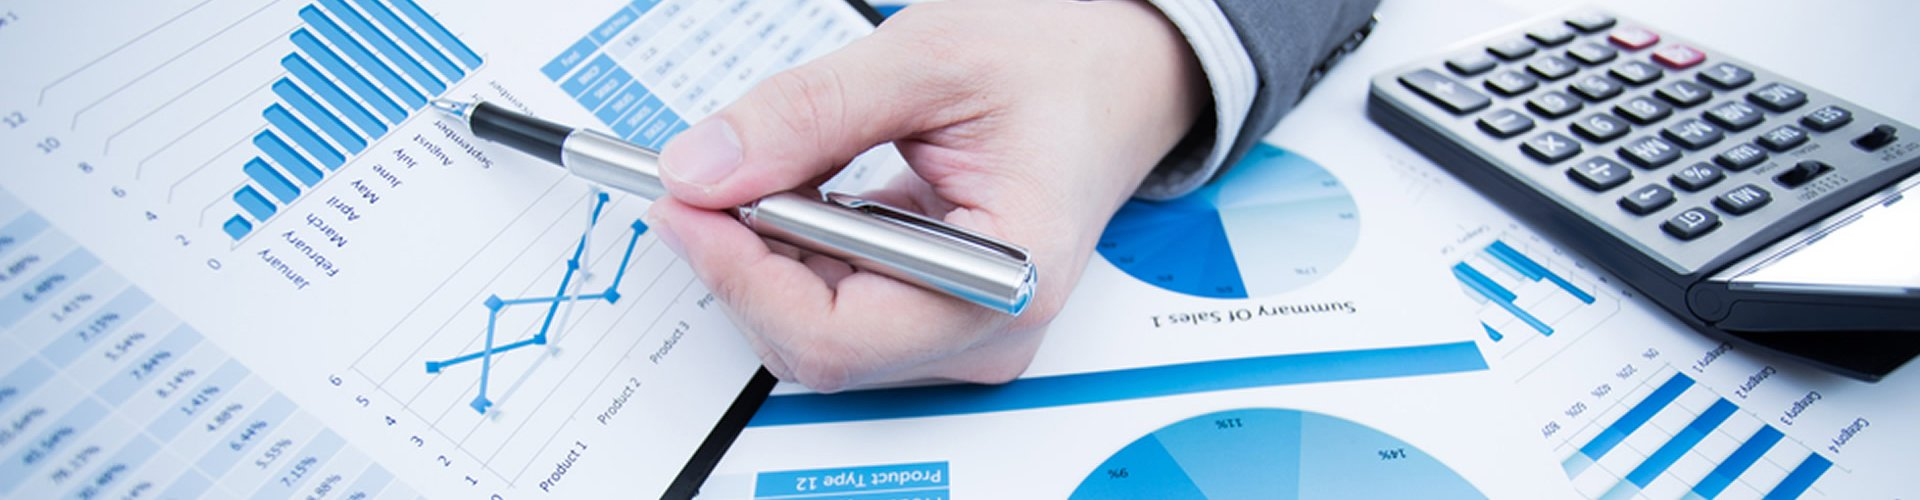 dissertation on finance Buy finance accounting dissertation topics online in uk, us, aus team of dedicated writers can assist you for finance accounting dissertation topics.